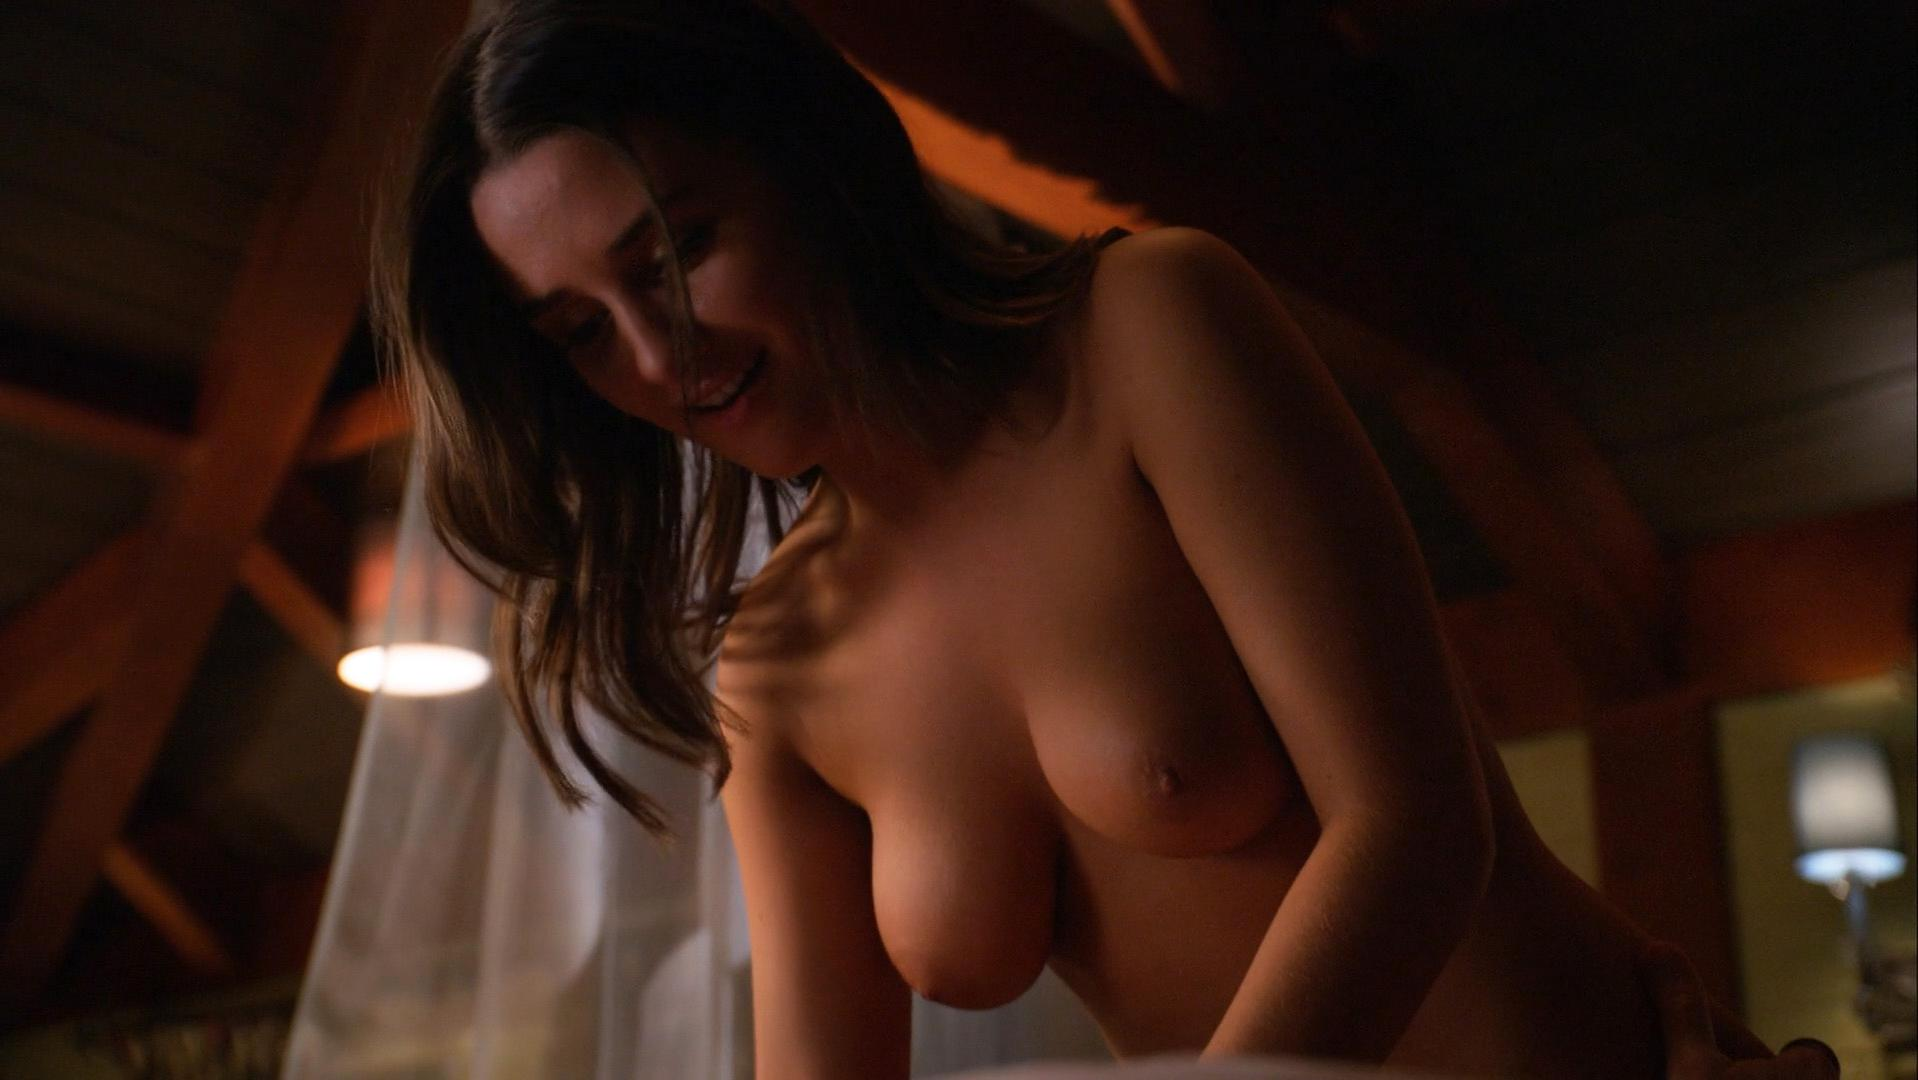 Addison Timlin nude - Californication s04 (2011)